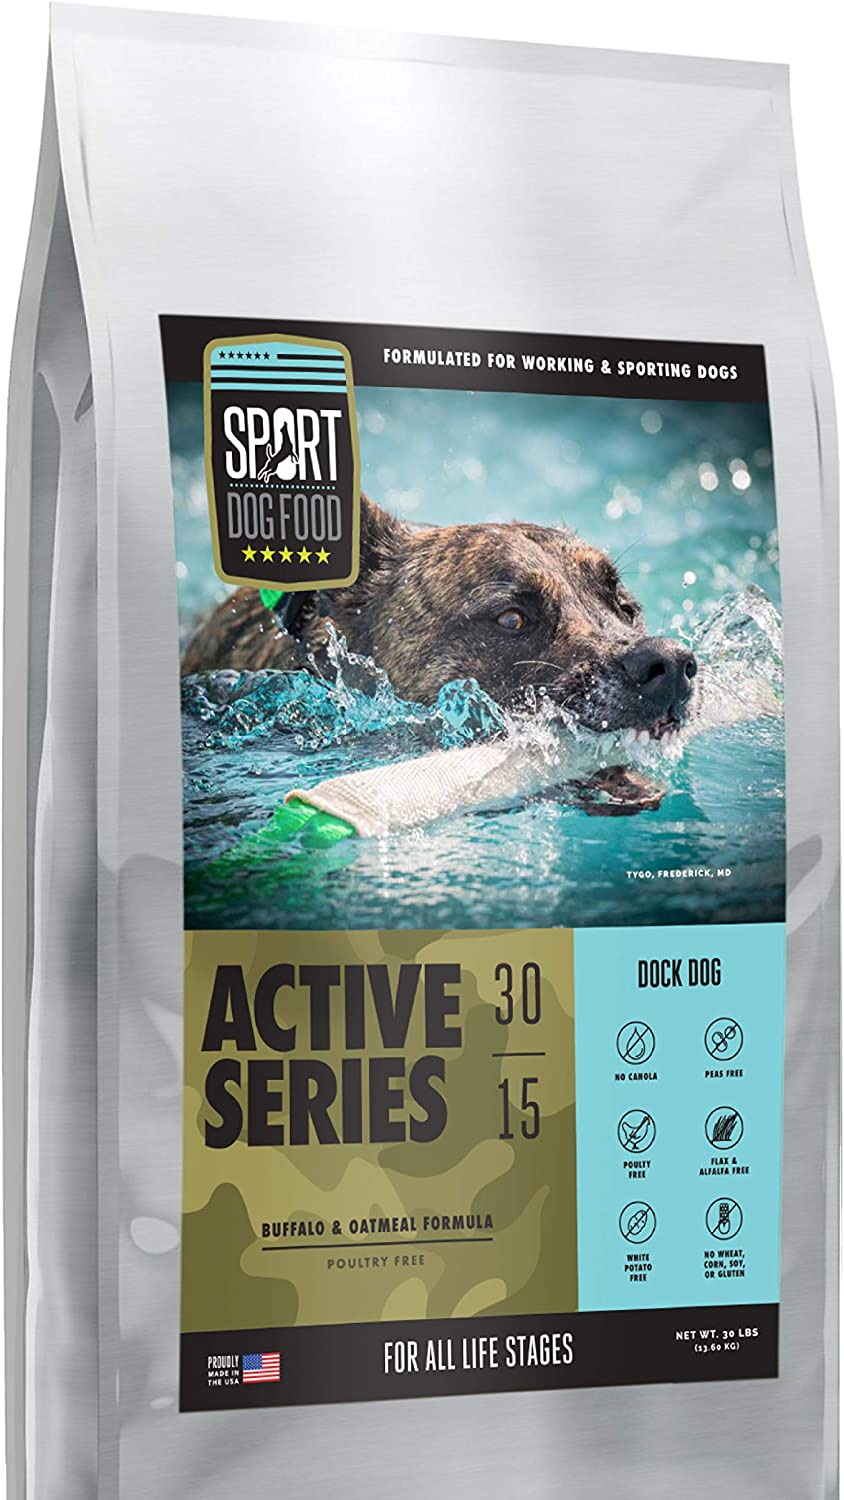 Active Series Dock Dog Buffalo Formula, Peas and Poultry Free Dry Dog Food, 30 lb. bag